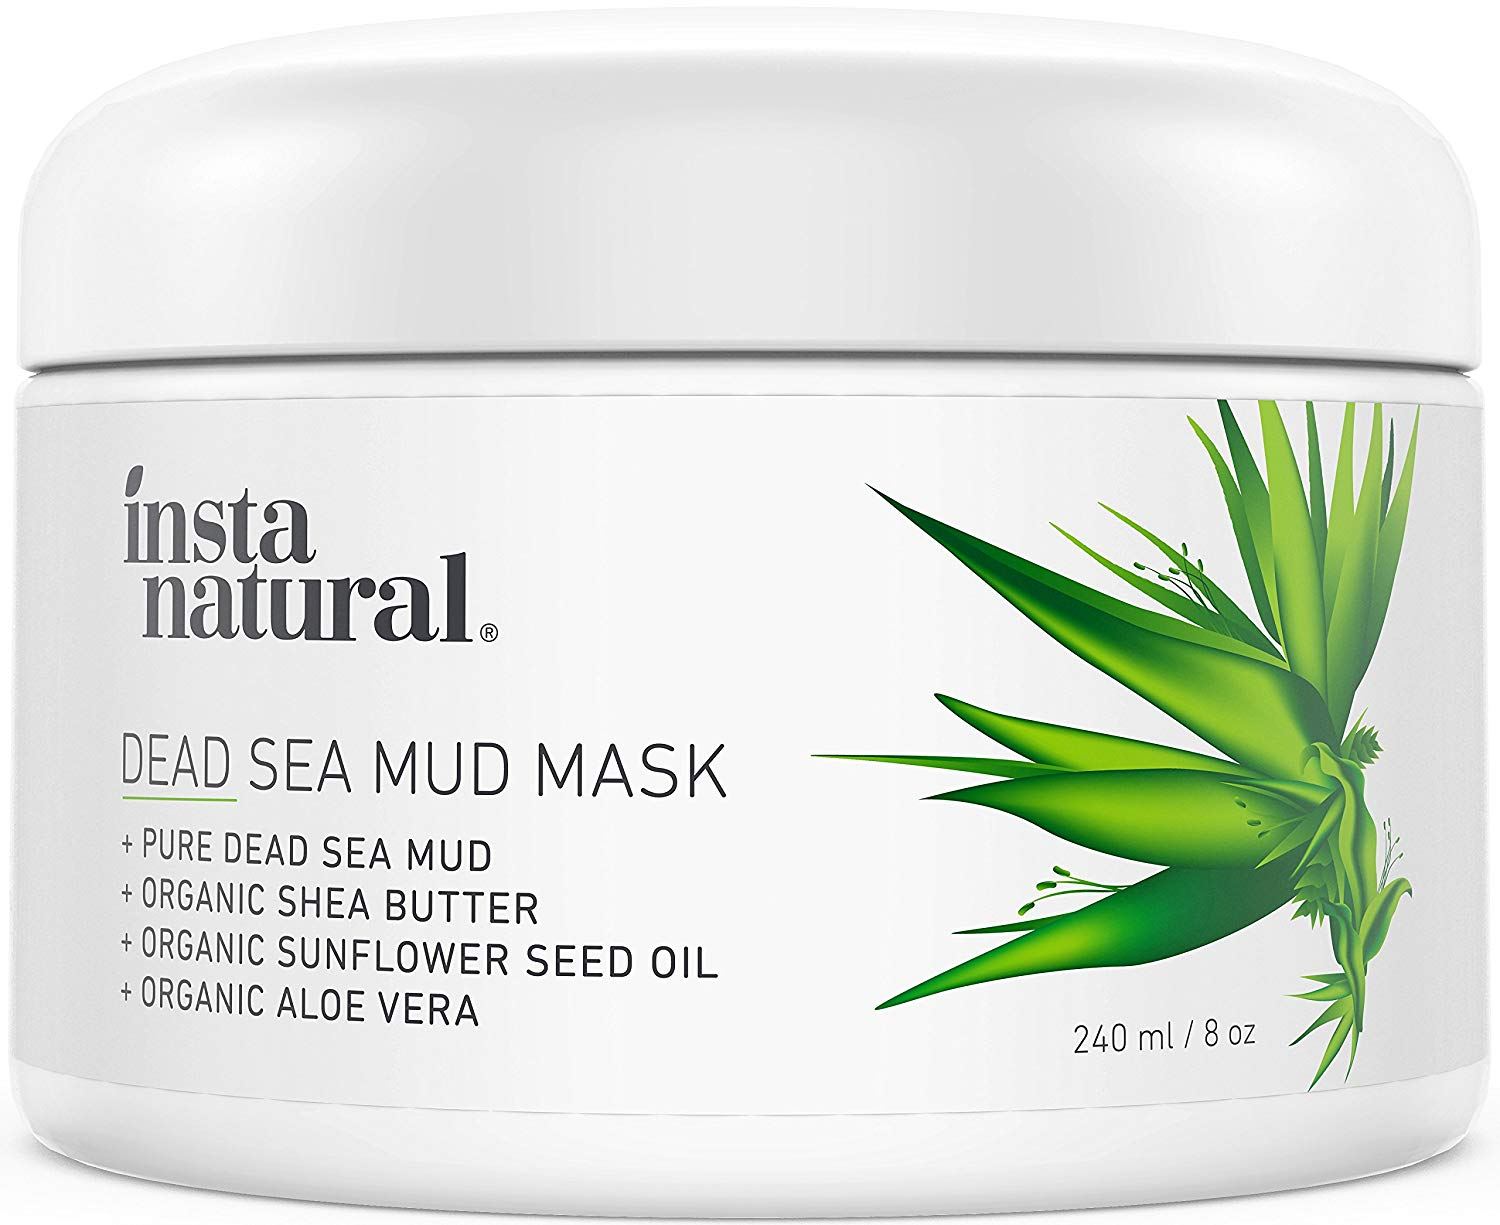 InstaNatural Dead Sea Mud Mask - Reduce Facial Pores - Organic for Oily & Acne Prone Skin, Blemishes & Complexion - Mineral Infused Fine Line Reducing Product with Shea Butter & Aloe Vera – 8 oz